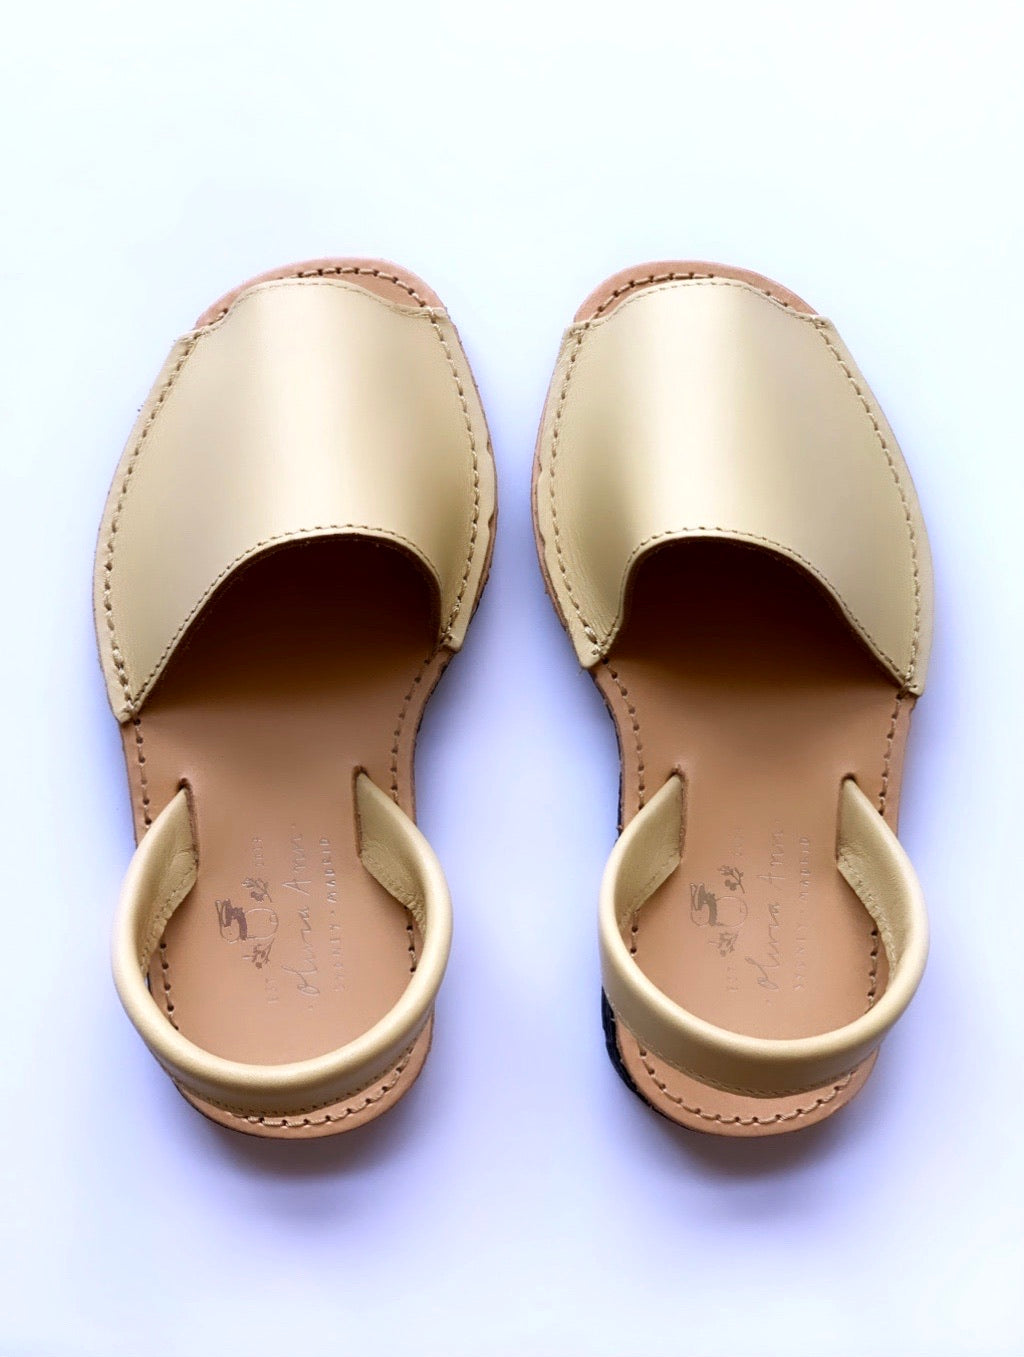 Authentic leather avarcas crafted in Menorca Spain. Available in difference sizes for the whole family. From baby to adults. Menorquinas. Sandals. Olivia Ann